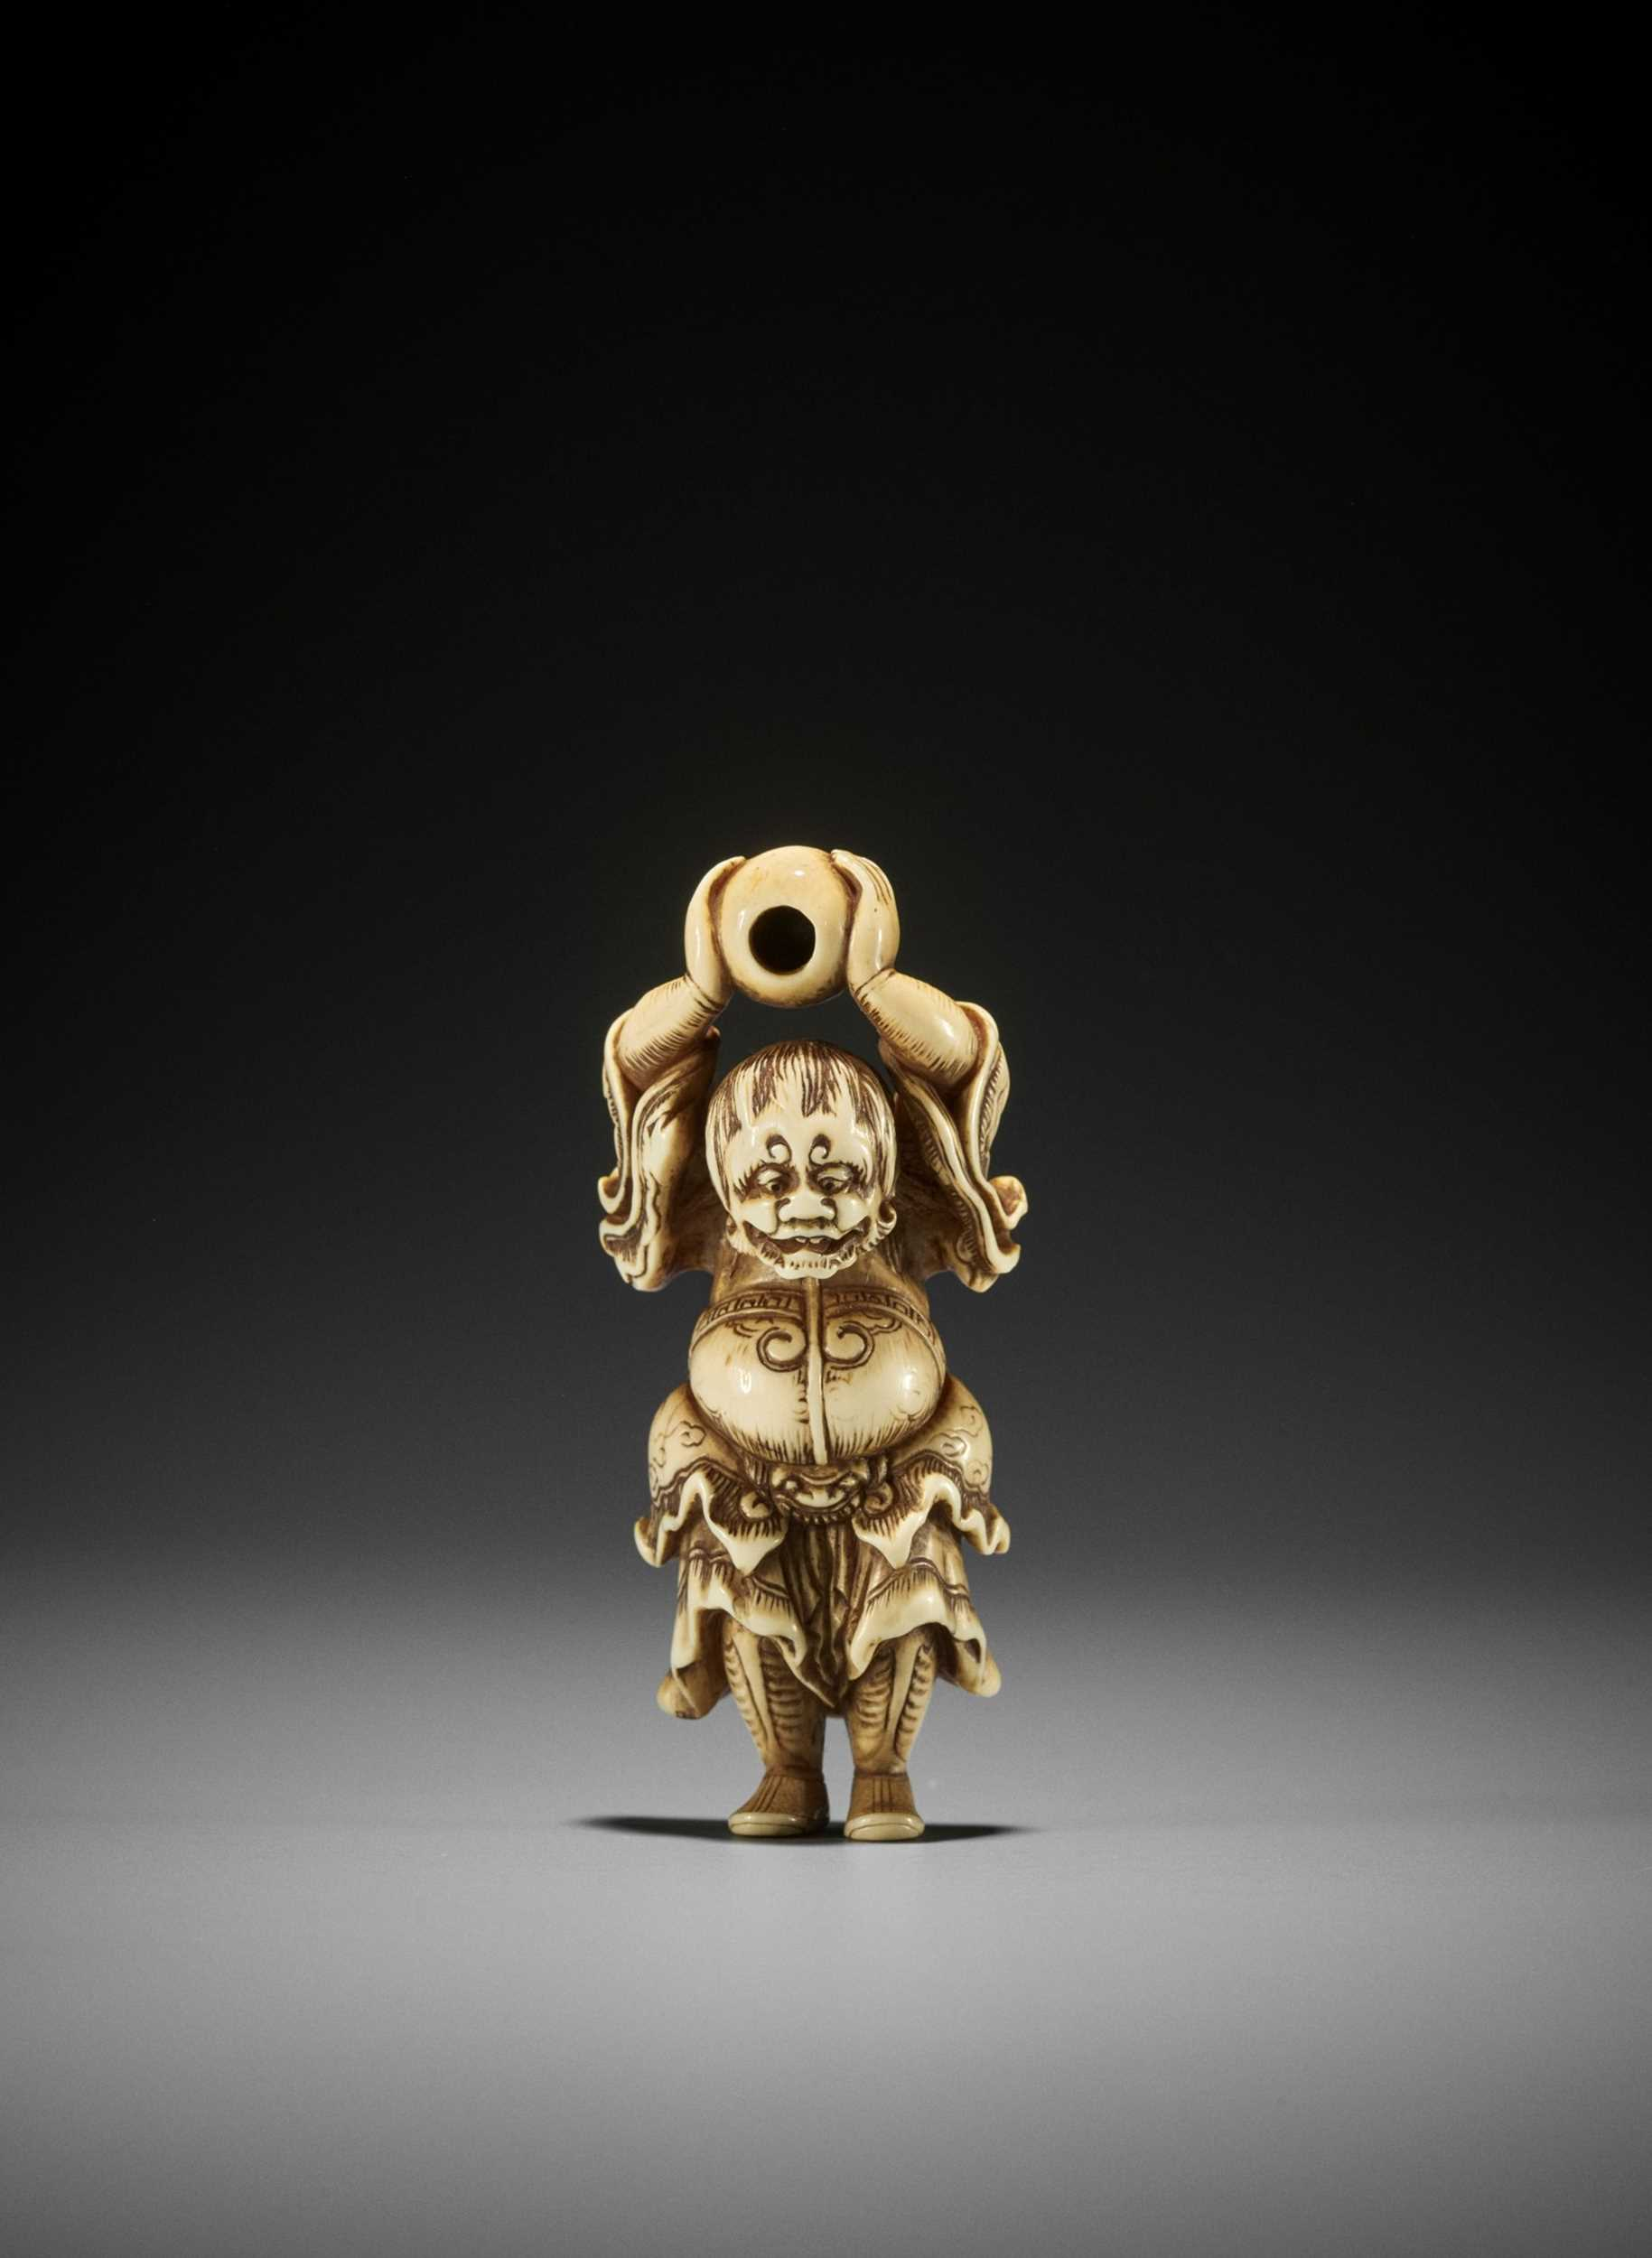 Lot 65 - A RARE AND SUPERB IVORY NETSUKE OF RYUJIN WITH TAMA, ATTRIBUTED TO SANKO